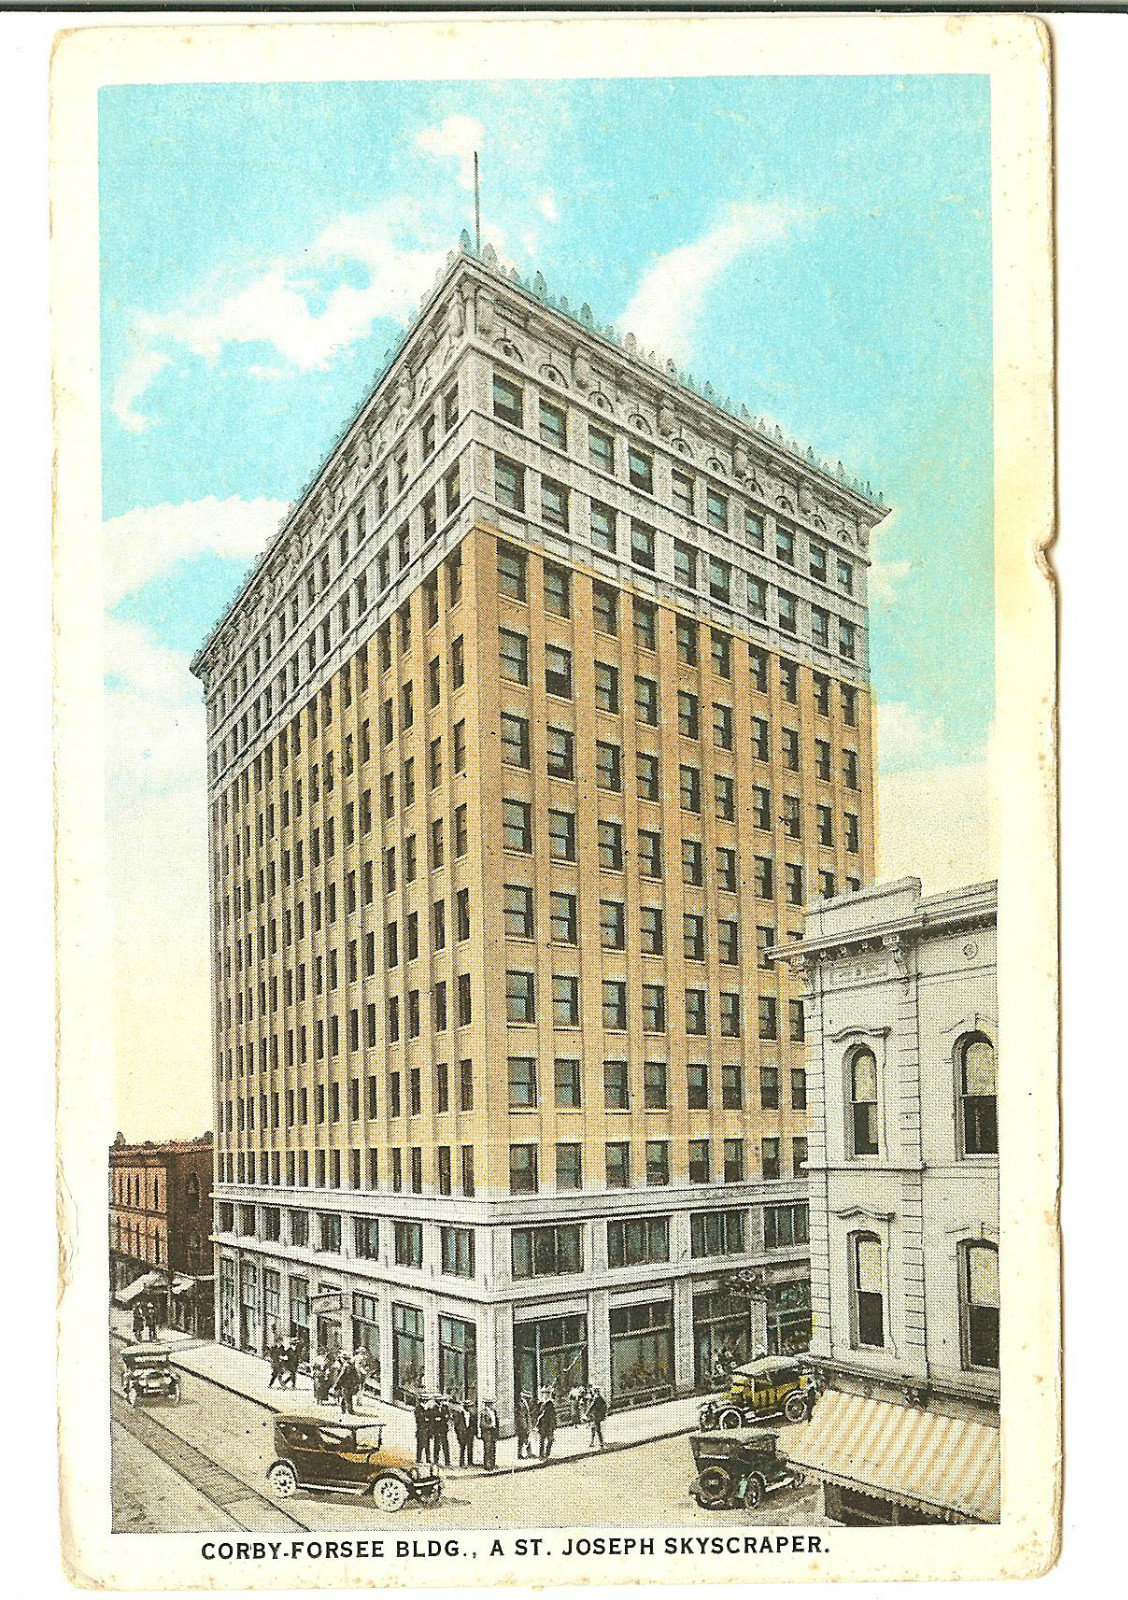 The Corby Building St. Joseph Mo. - Tallest Building in St. Joseph